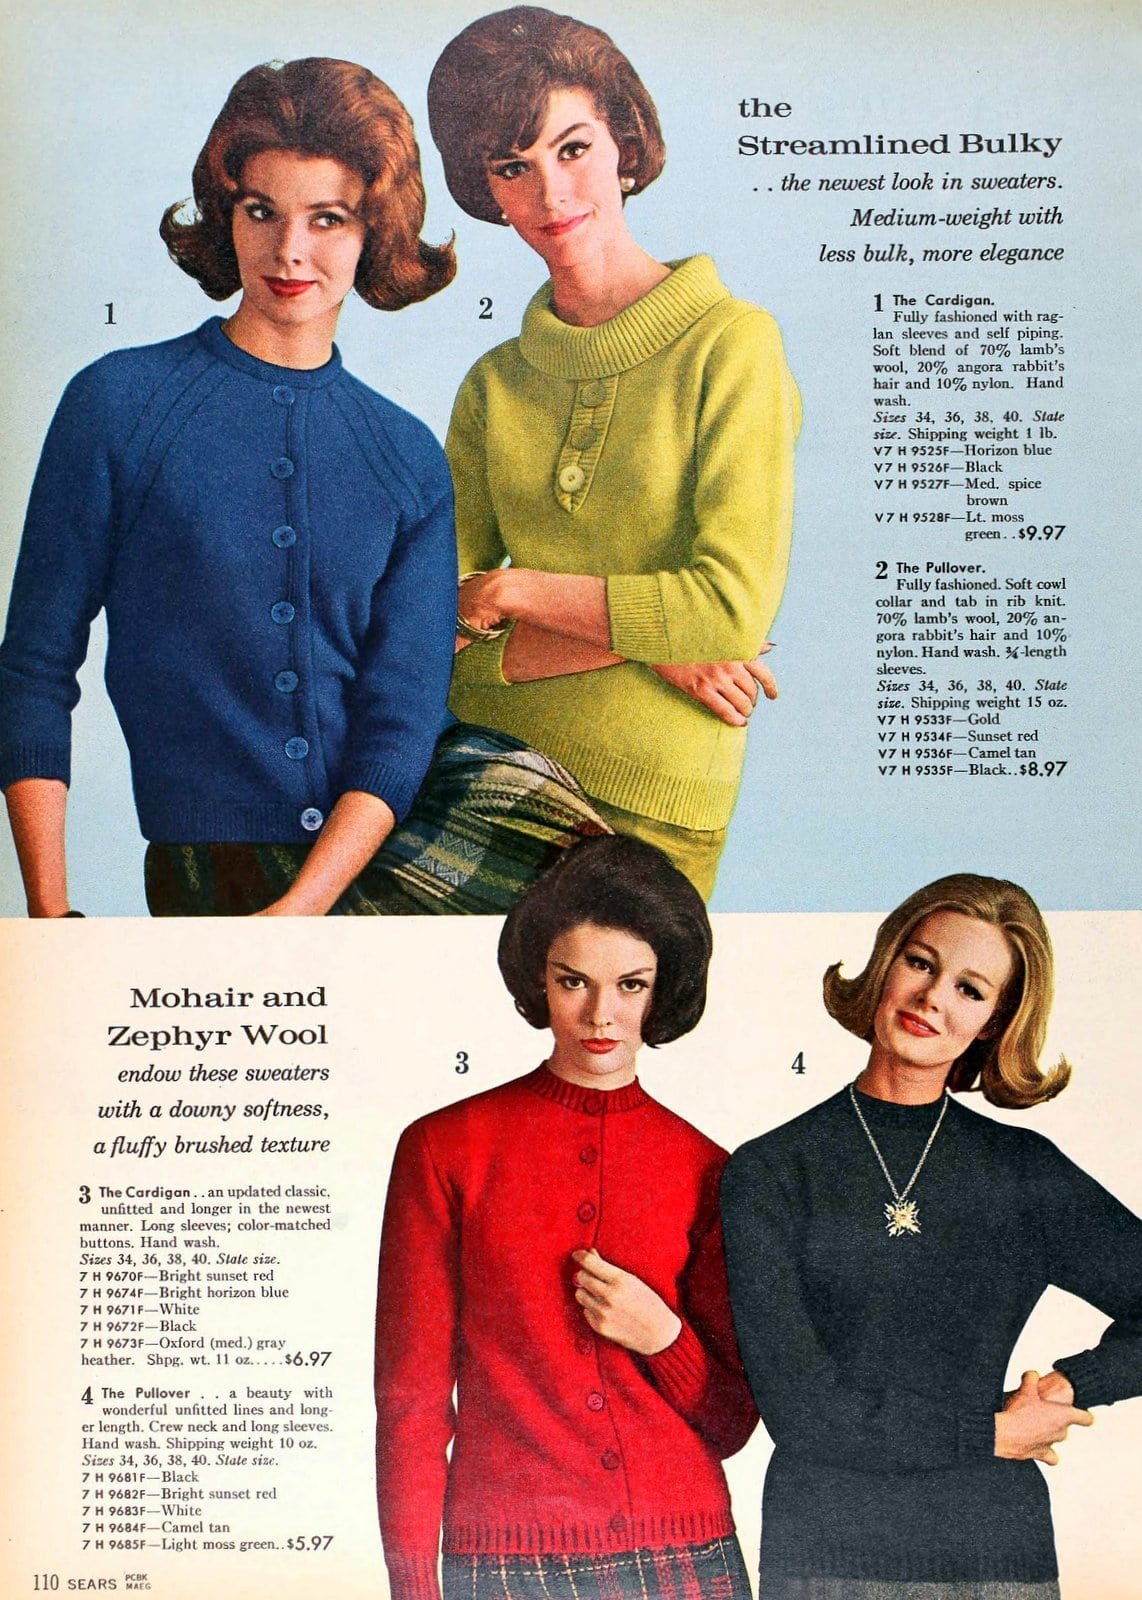 Sixties sweater styles from 1962 (7)